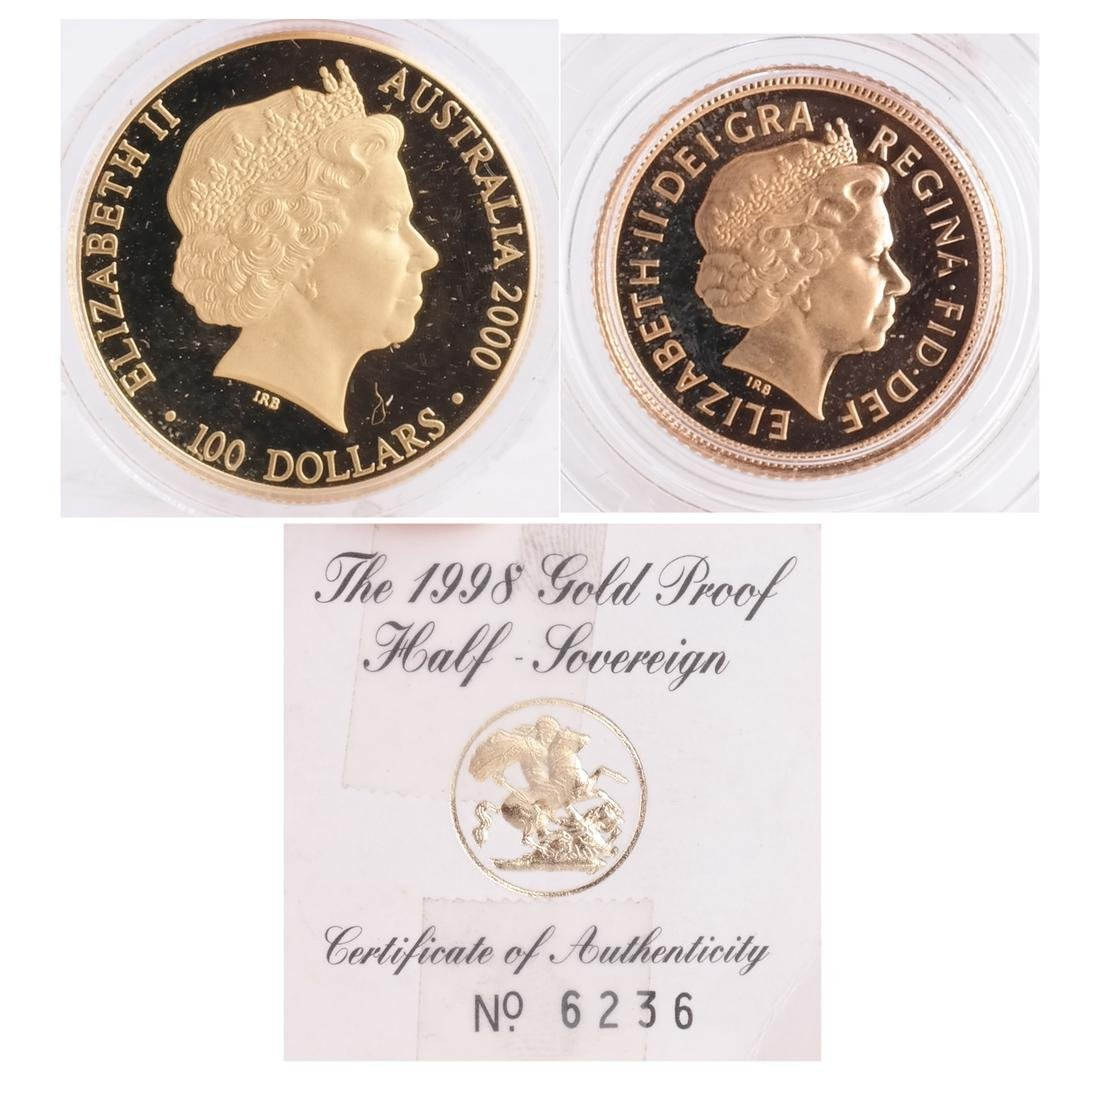 1998 1/2 Sovereign, Australian $100